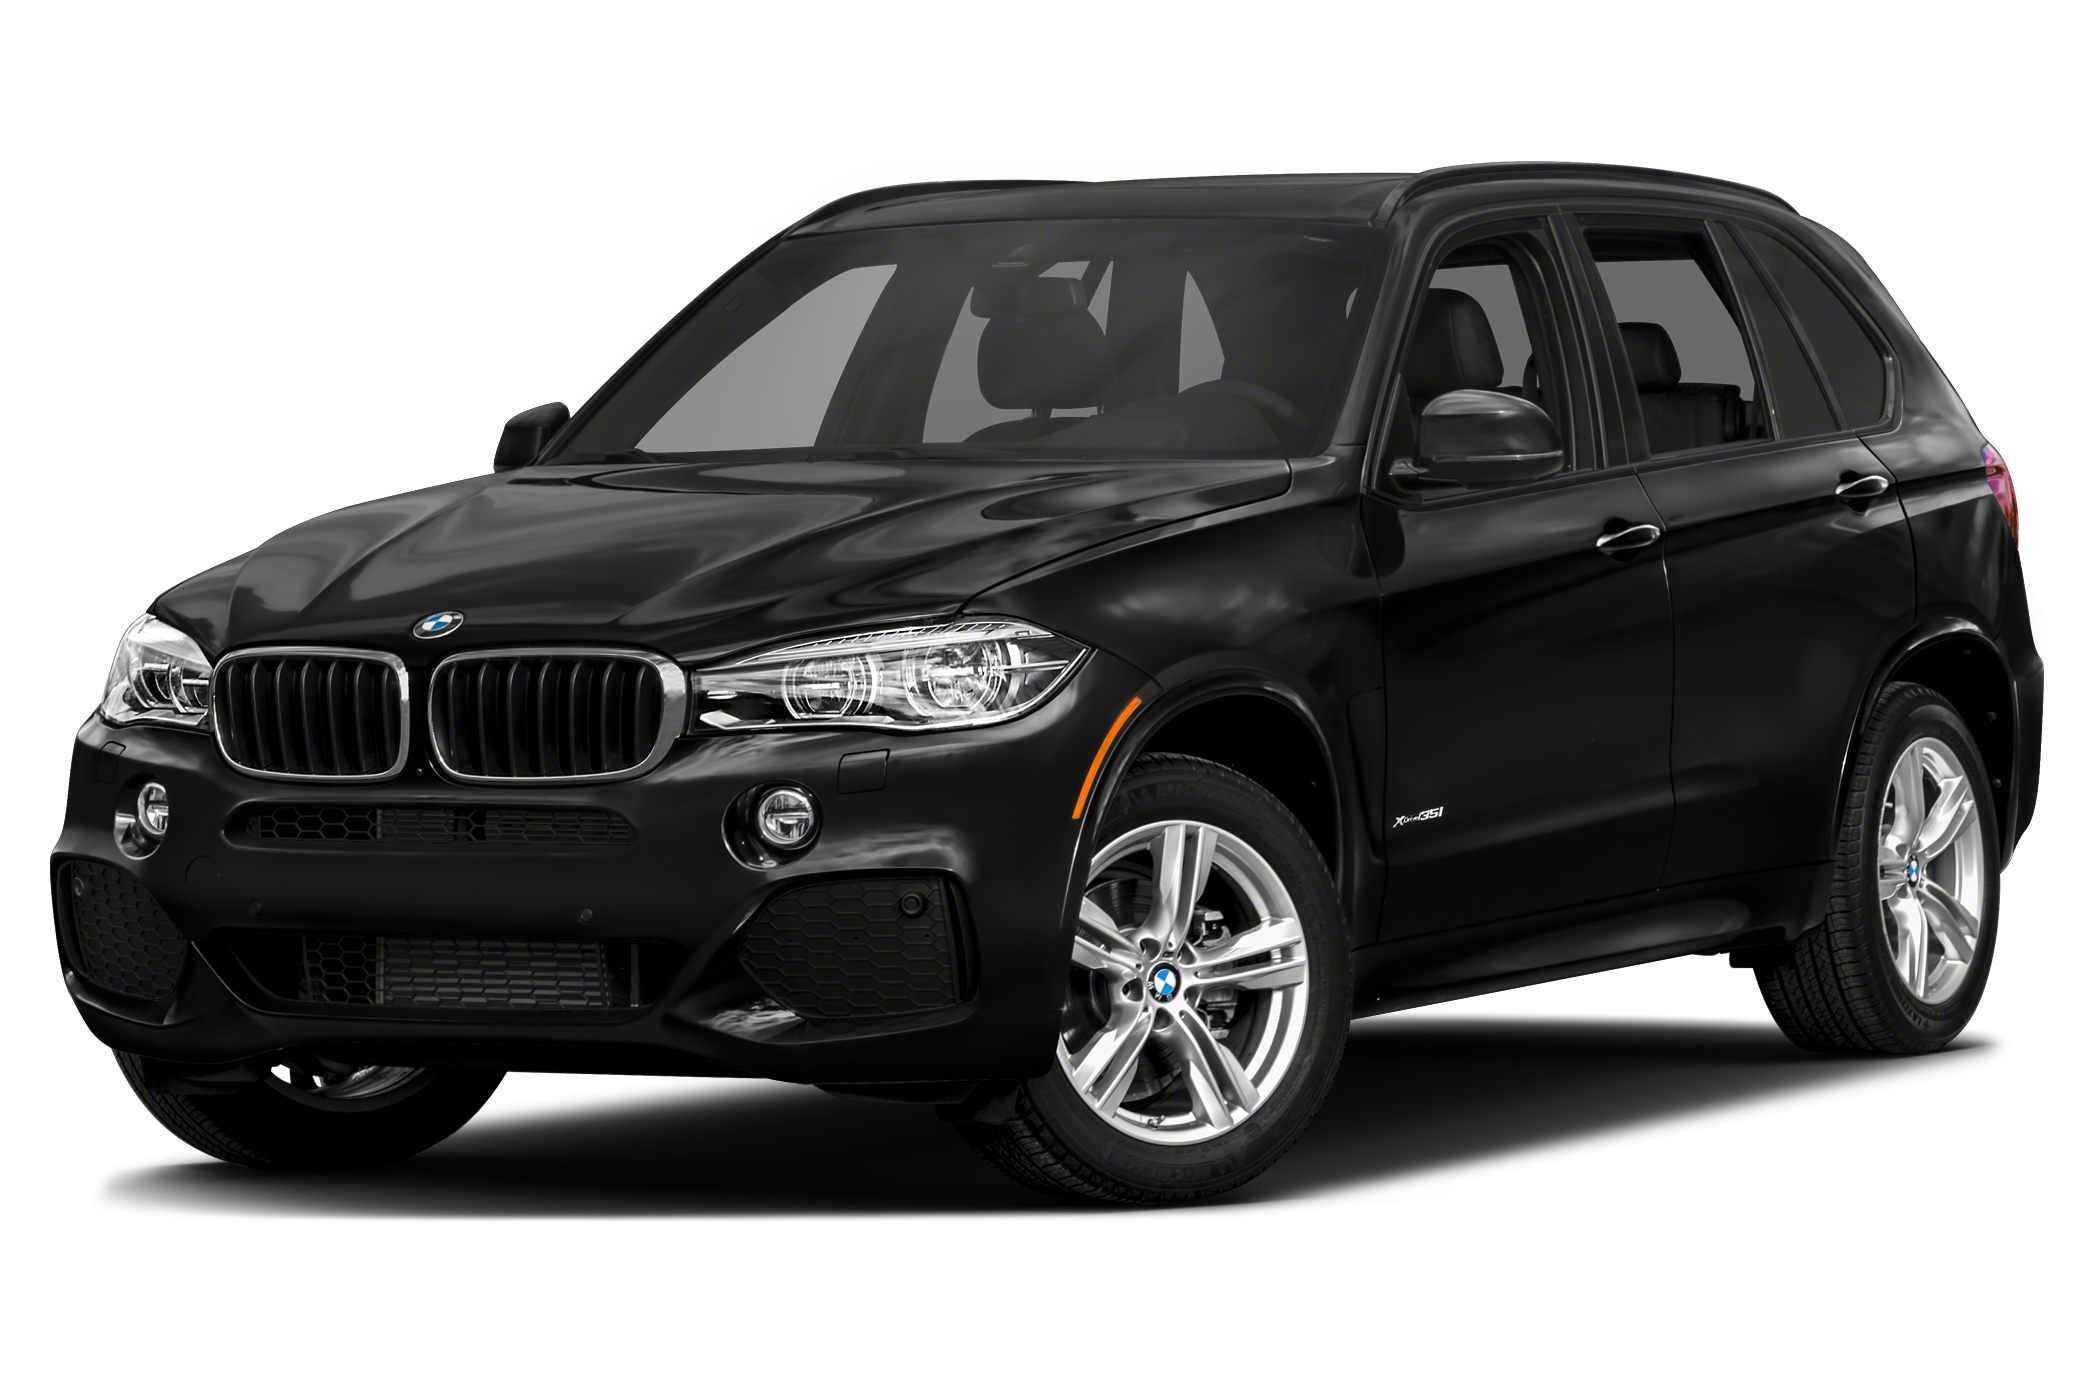 Image result for bmw x5